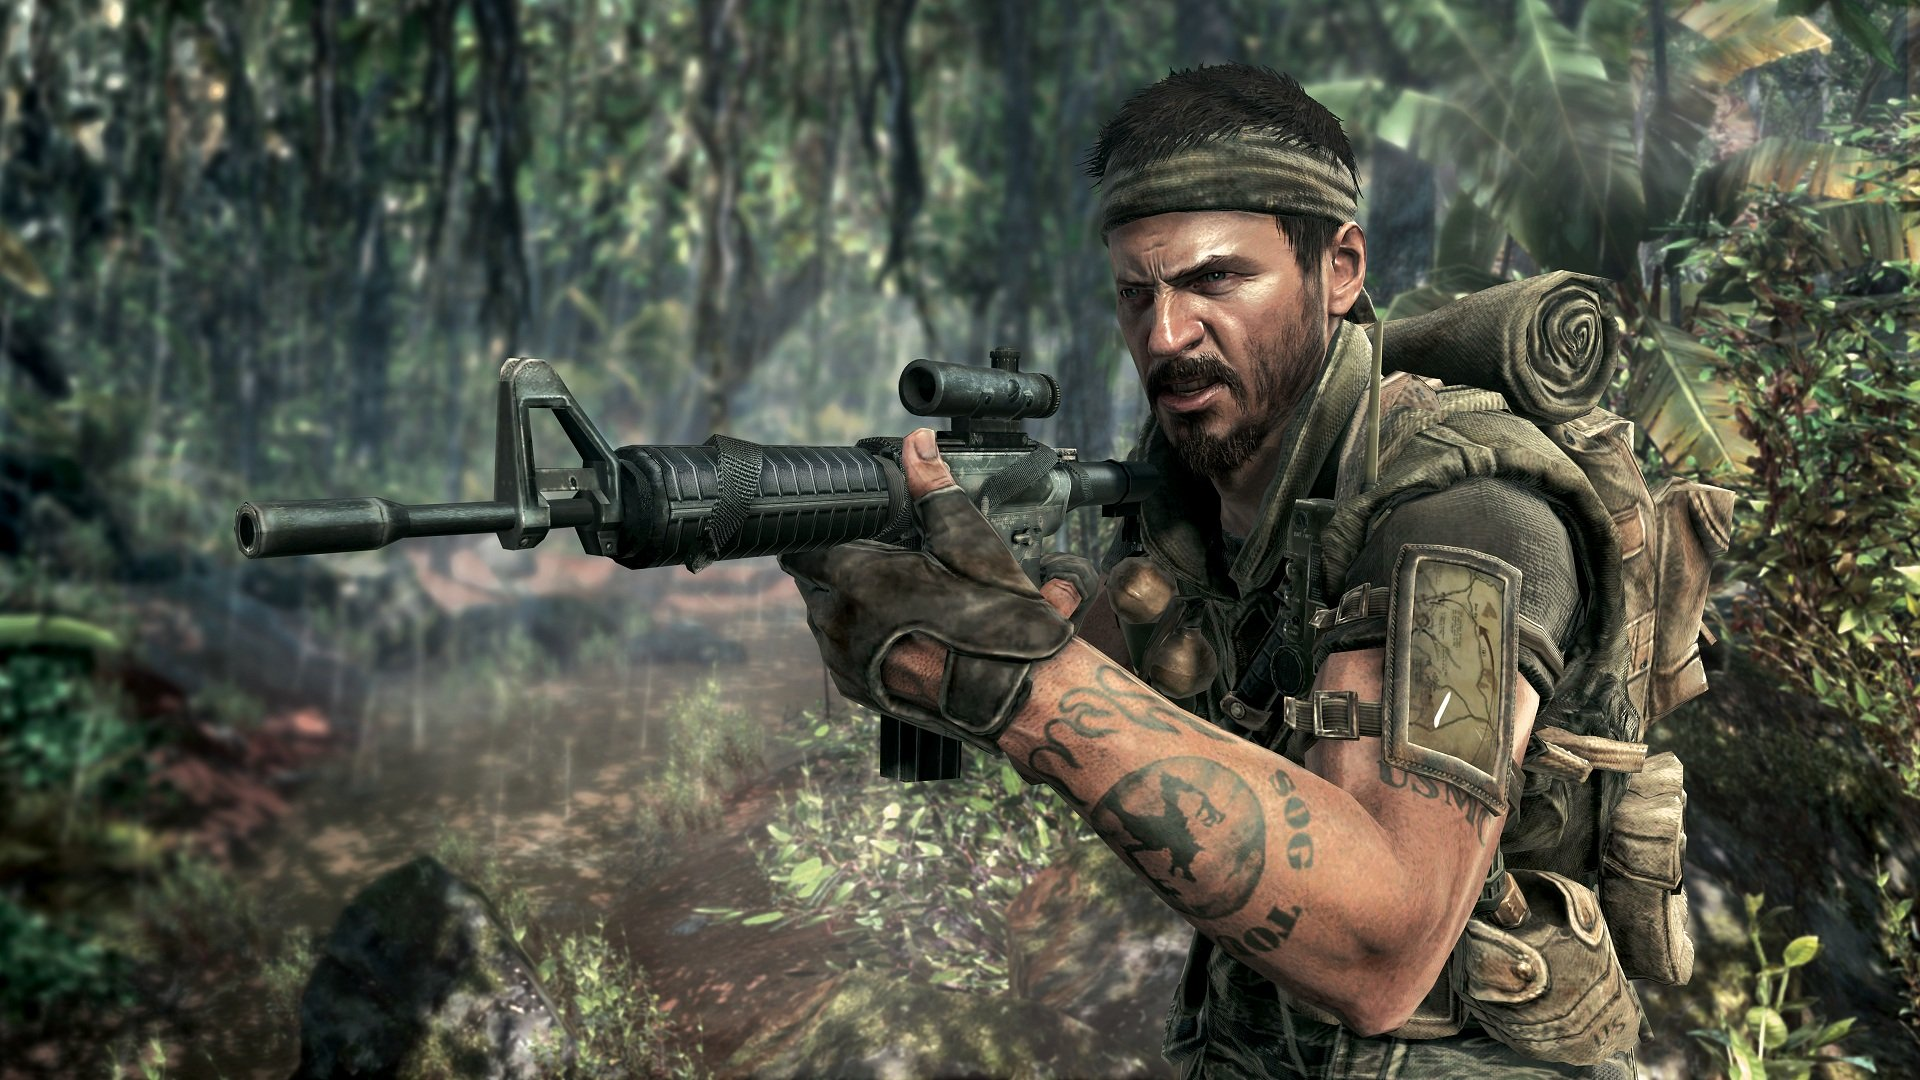 Call of Duty: Black Ops Cold Wars Recasts Its Leads And They're Not All Thrilled